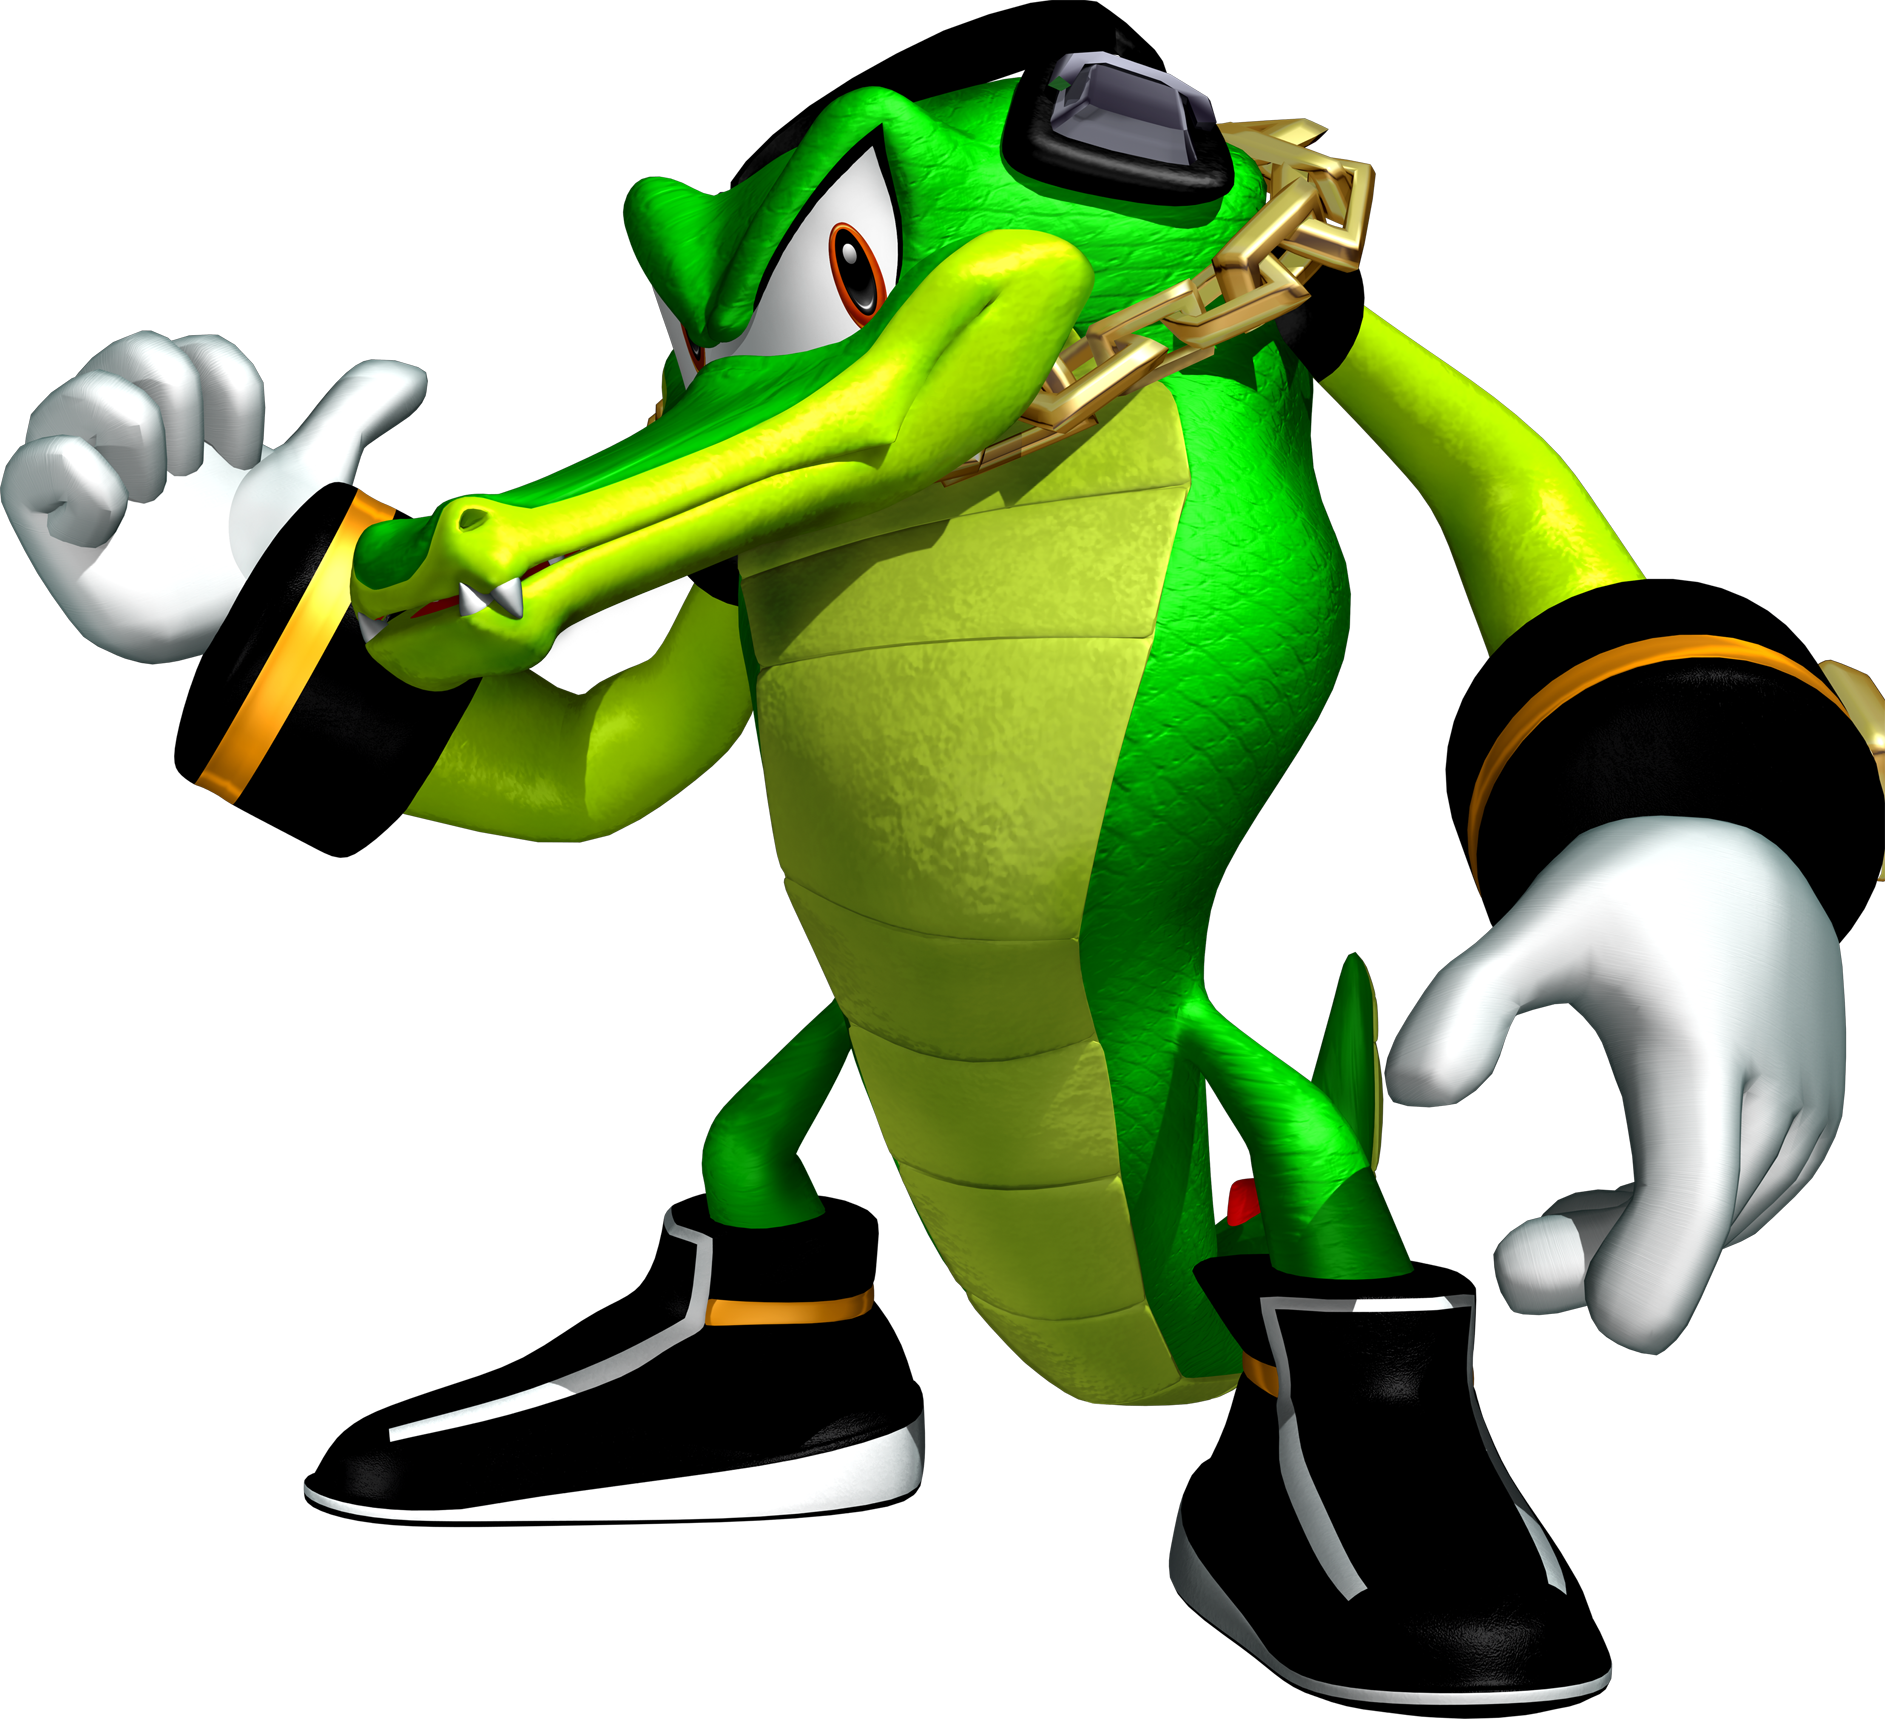 Super vector crocodile. The is a character